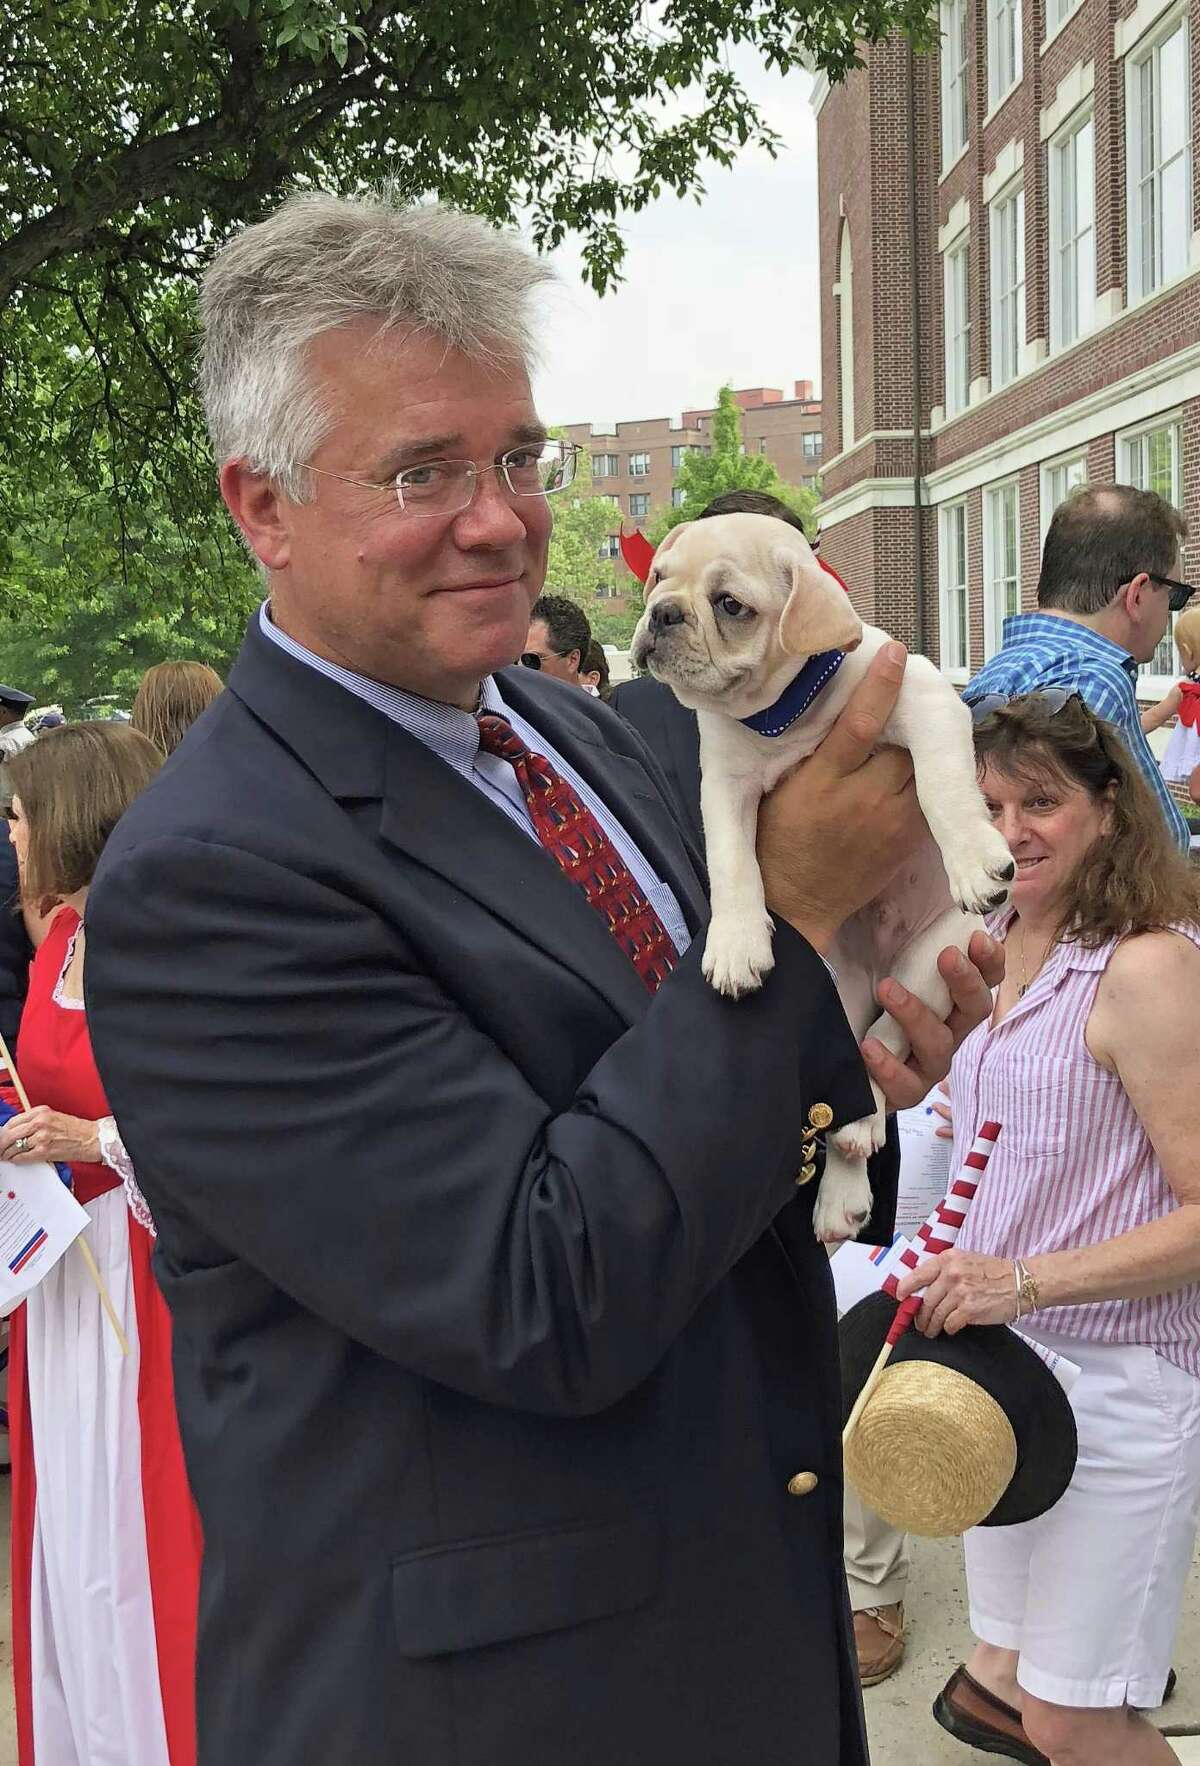 John Shaban, a former state representative from Redding, is running for the Republican nomination for attorney general. He held a dog while campaigning in Greenwich on July 4, 2018.